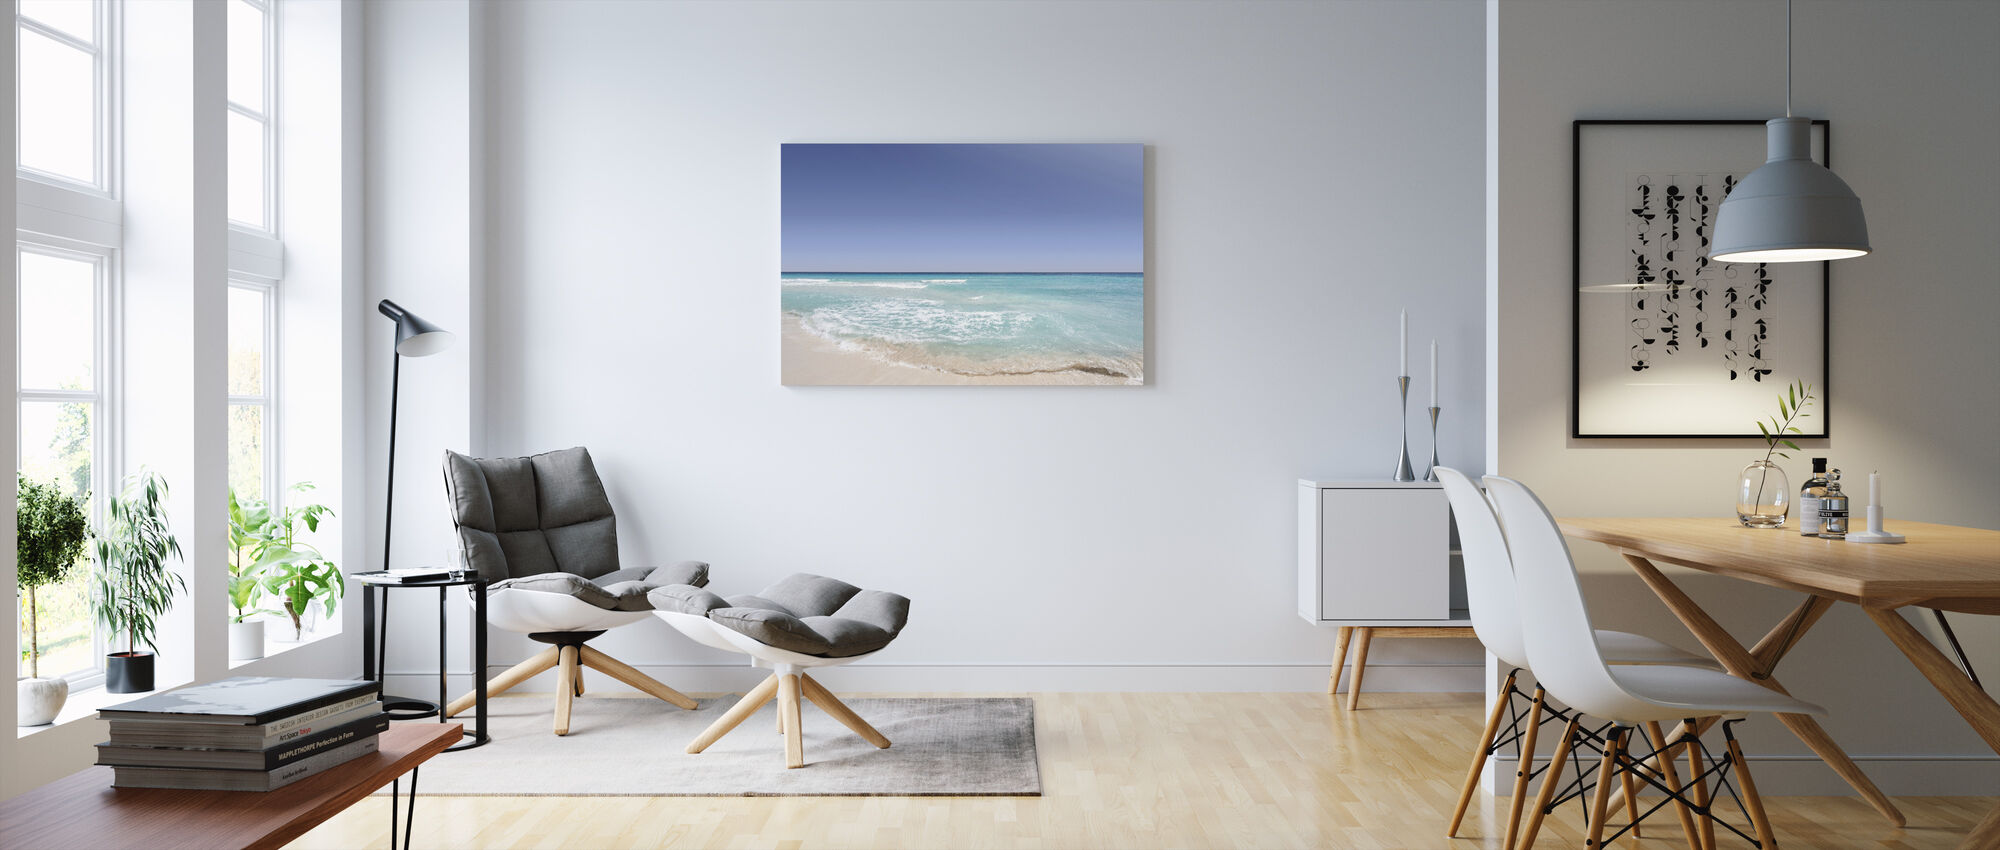 Beach Shore - Canvas print - Living Room